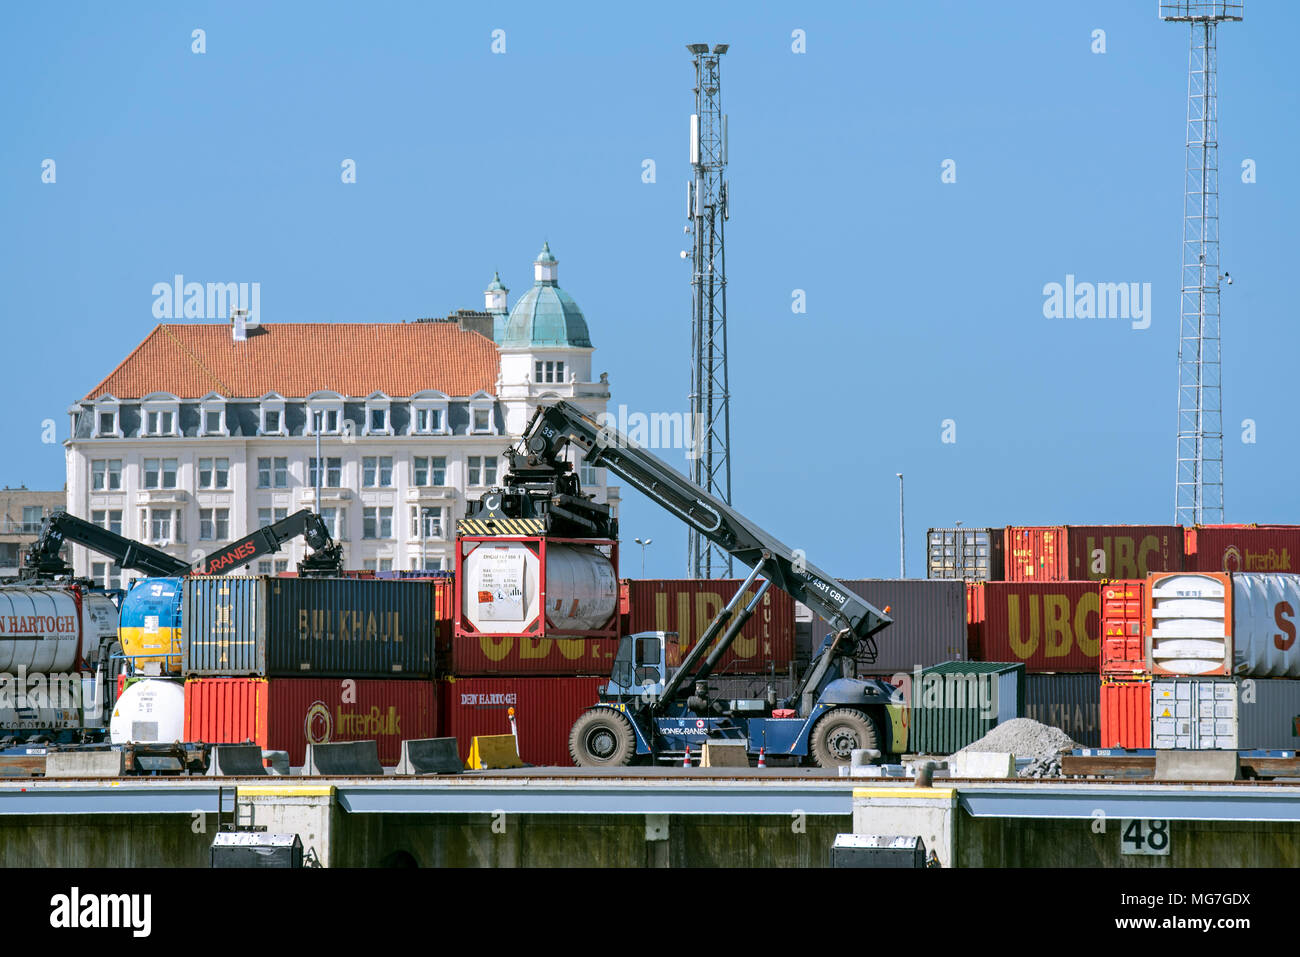 Reach stacker carrying intermodal cargo container on quay in the port of Zeebrugge / Zeebruges along the North Sea coast, West Flanders, Belgium - Stock Image